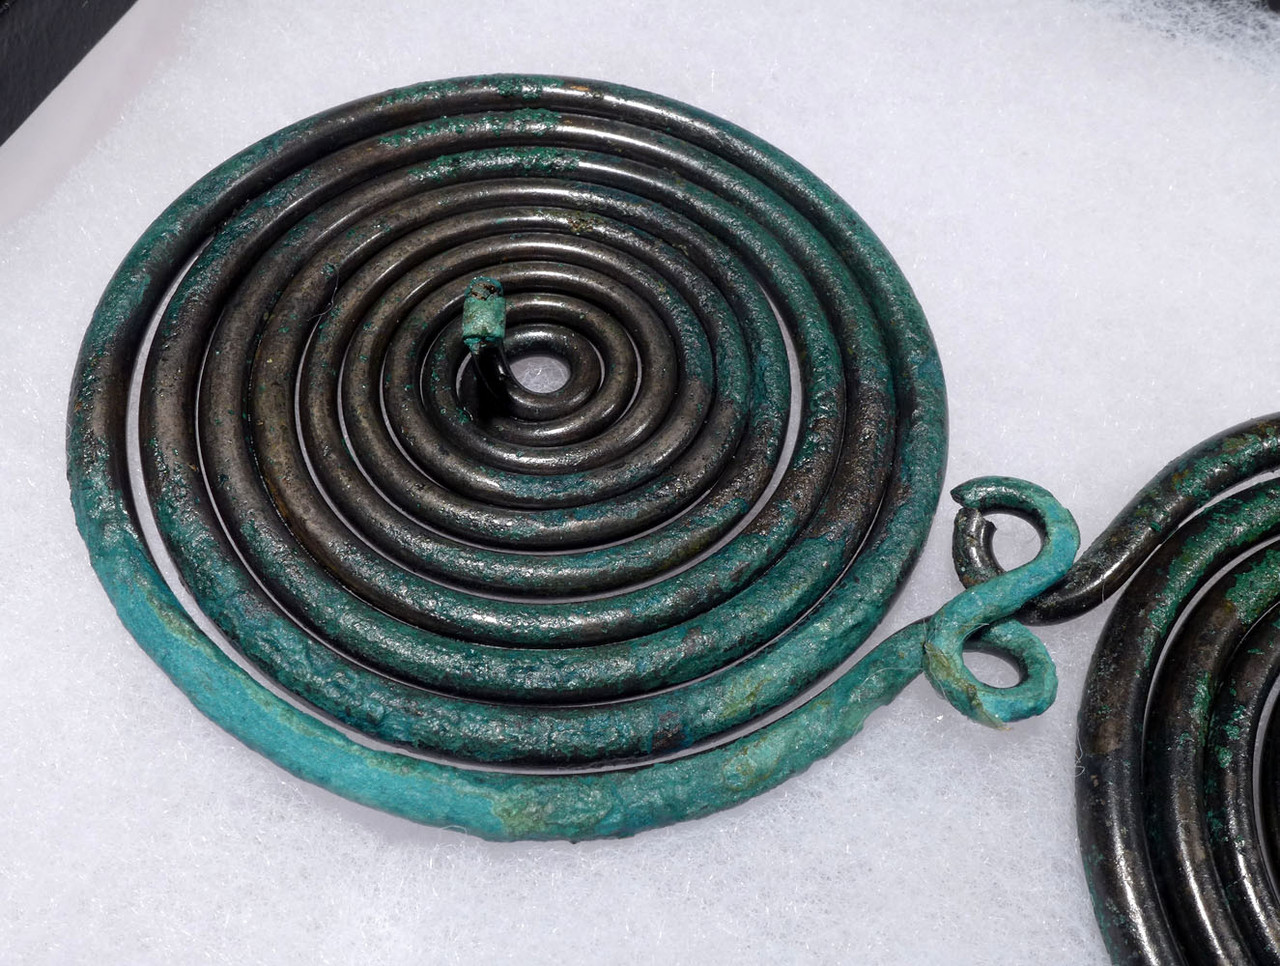 MUSEUM-CLASS LARGE ANCIENT EUROPEAN BRONZE SPIRAL PIN ORNAMENT  *CEL017